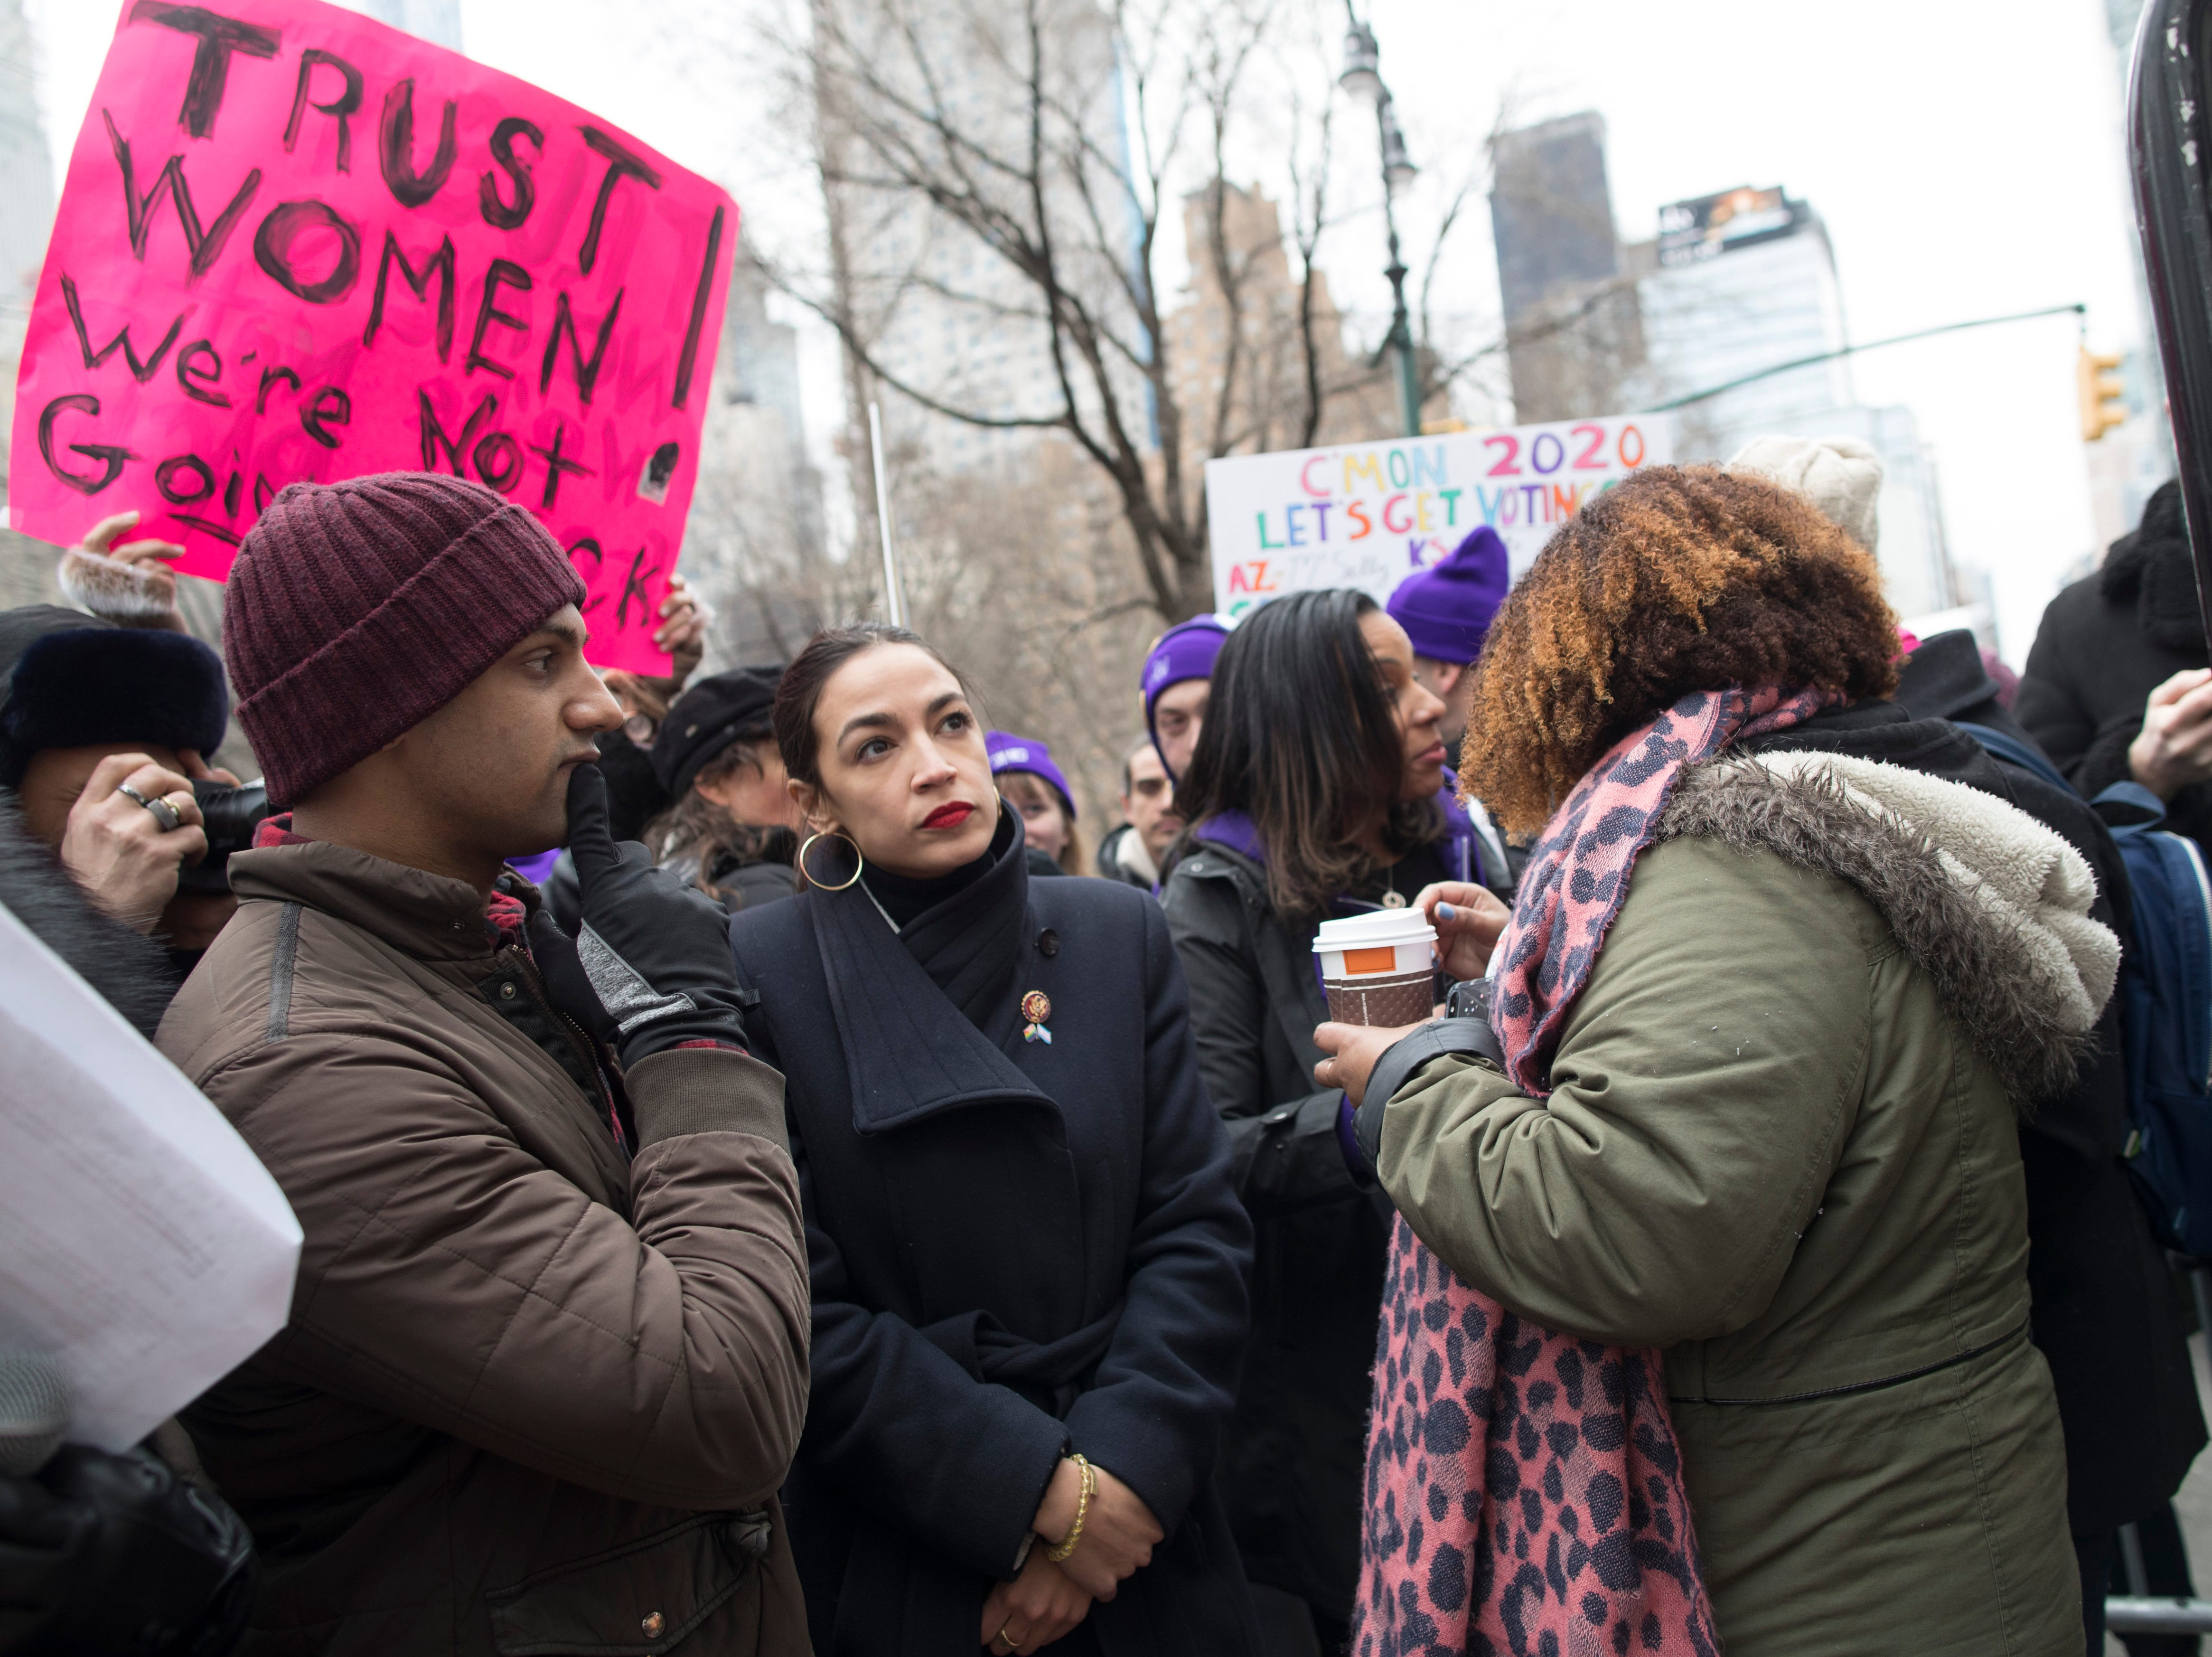 Rep. Alexandria Ocasio-Cortez, D-N.Y., waits backstage during the Women's March Alliance, Saturday, Jan. 19, 2019, in New York.